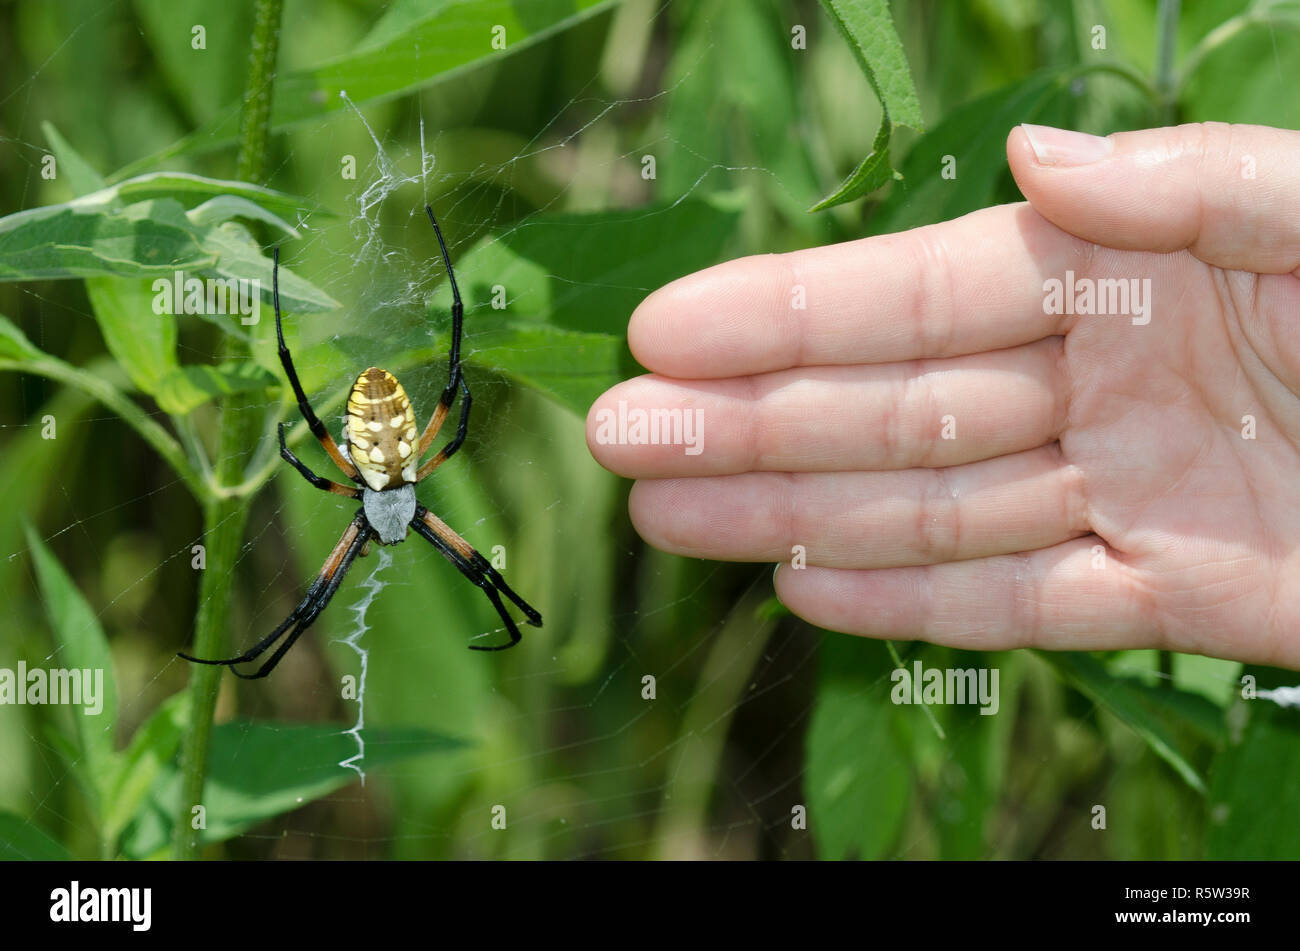 Stabilimentum Stock Photos \u0026 Stabilimentum Stock Images , Alamy